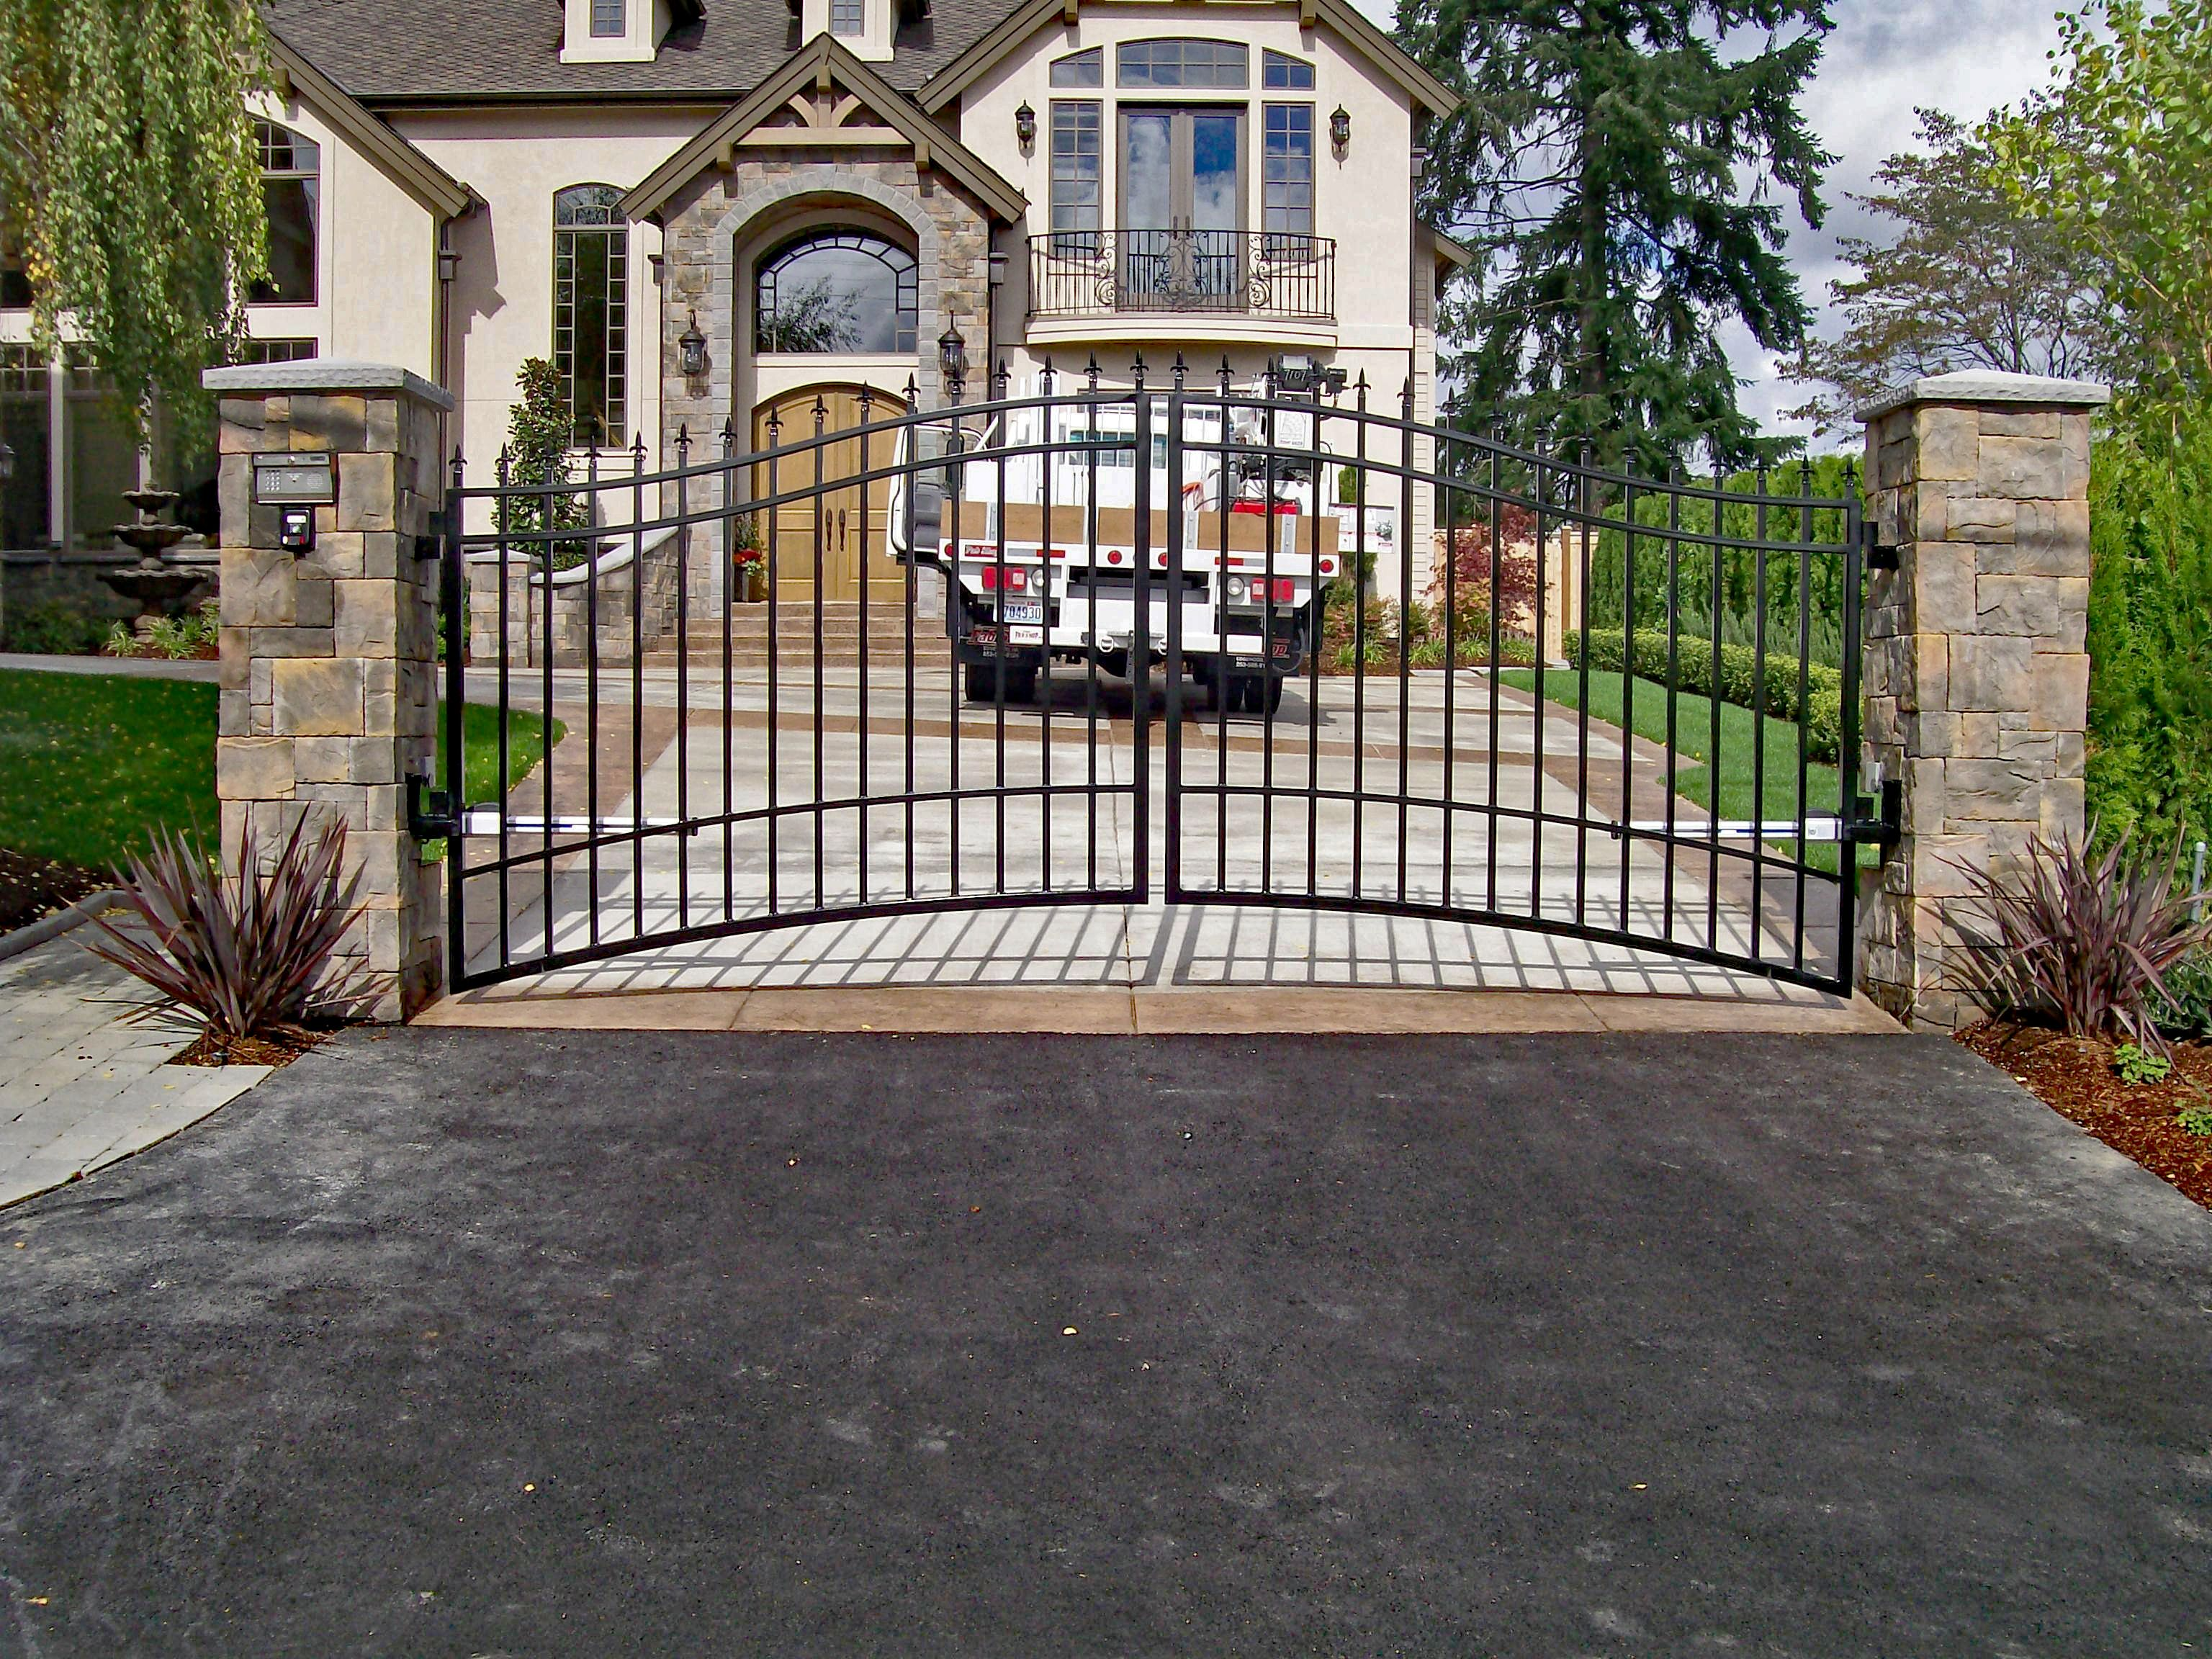 Double Swing Gate Fabricate At An Angle To Account For The Uphill Slope Custom Gate Security Driveway Iron Gates Driveway Metal Driveway Gates Iron Gates